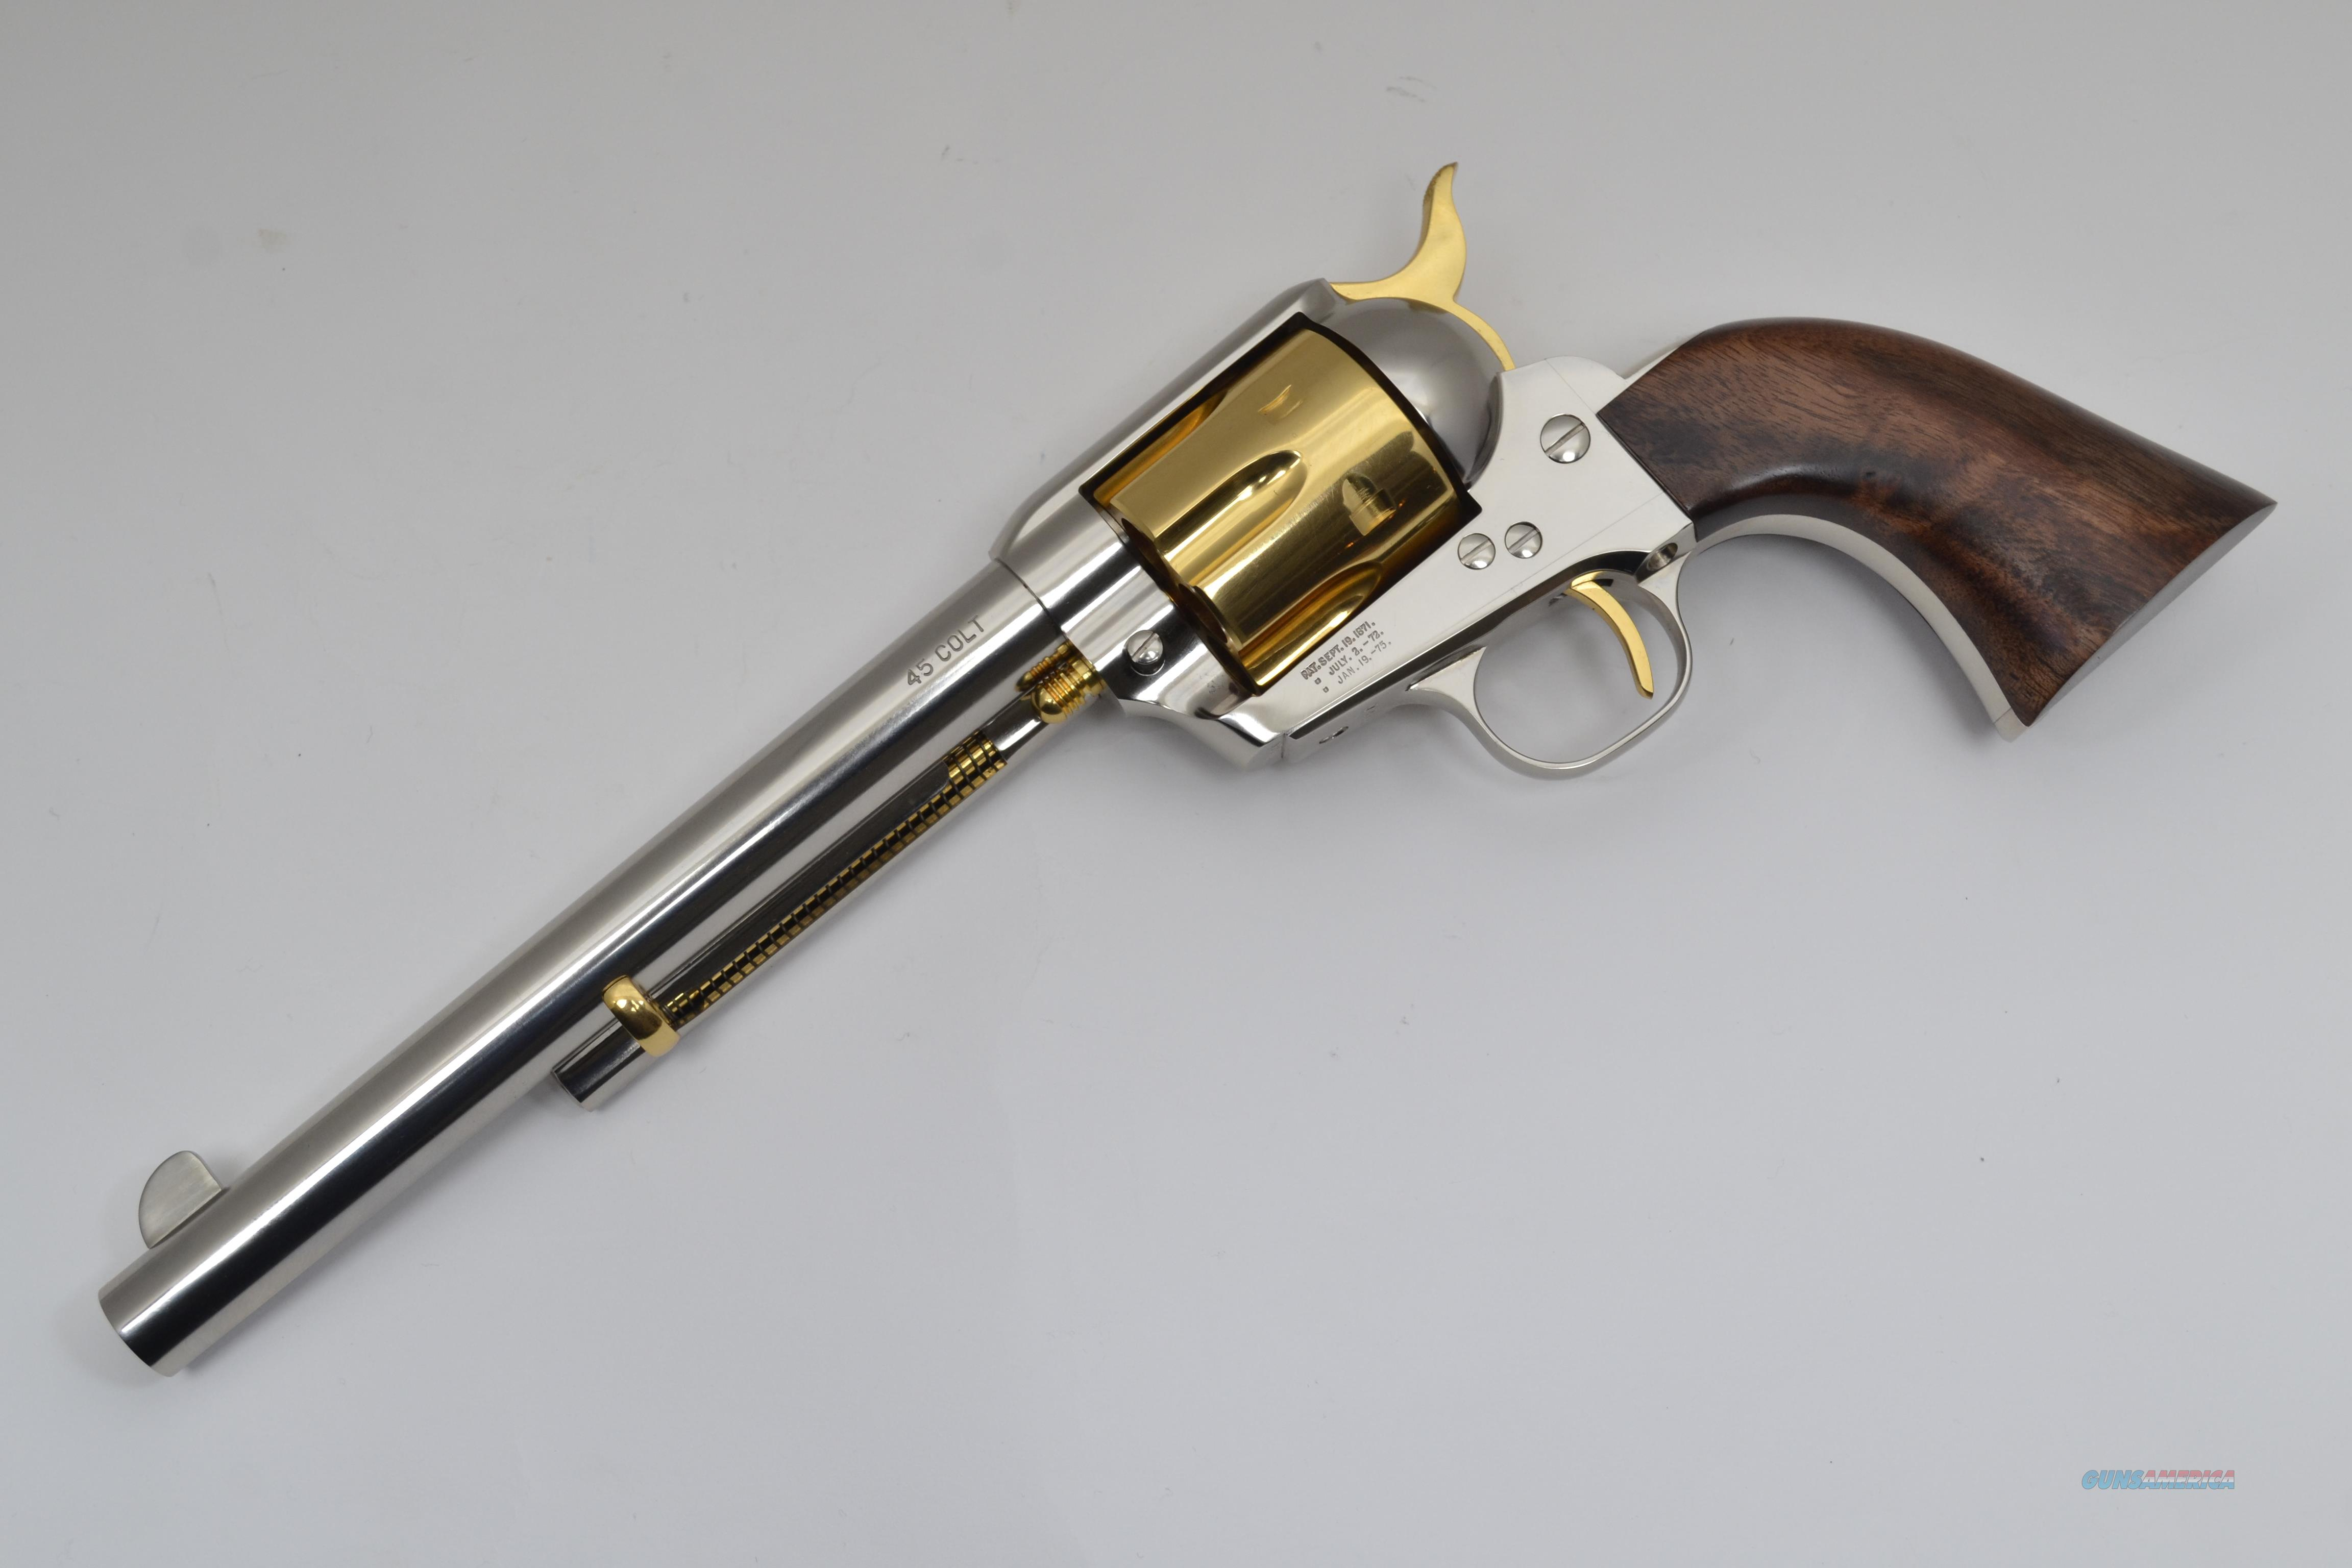 "Standard Mfg - Single Action Revolver, Nickel/Gold Plated, .45 LC. 7 1/2"" Barrel. (LIMITED EDITION)  Guns > Pistols > Standard Mfg. Pistols"